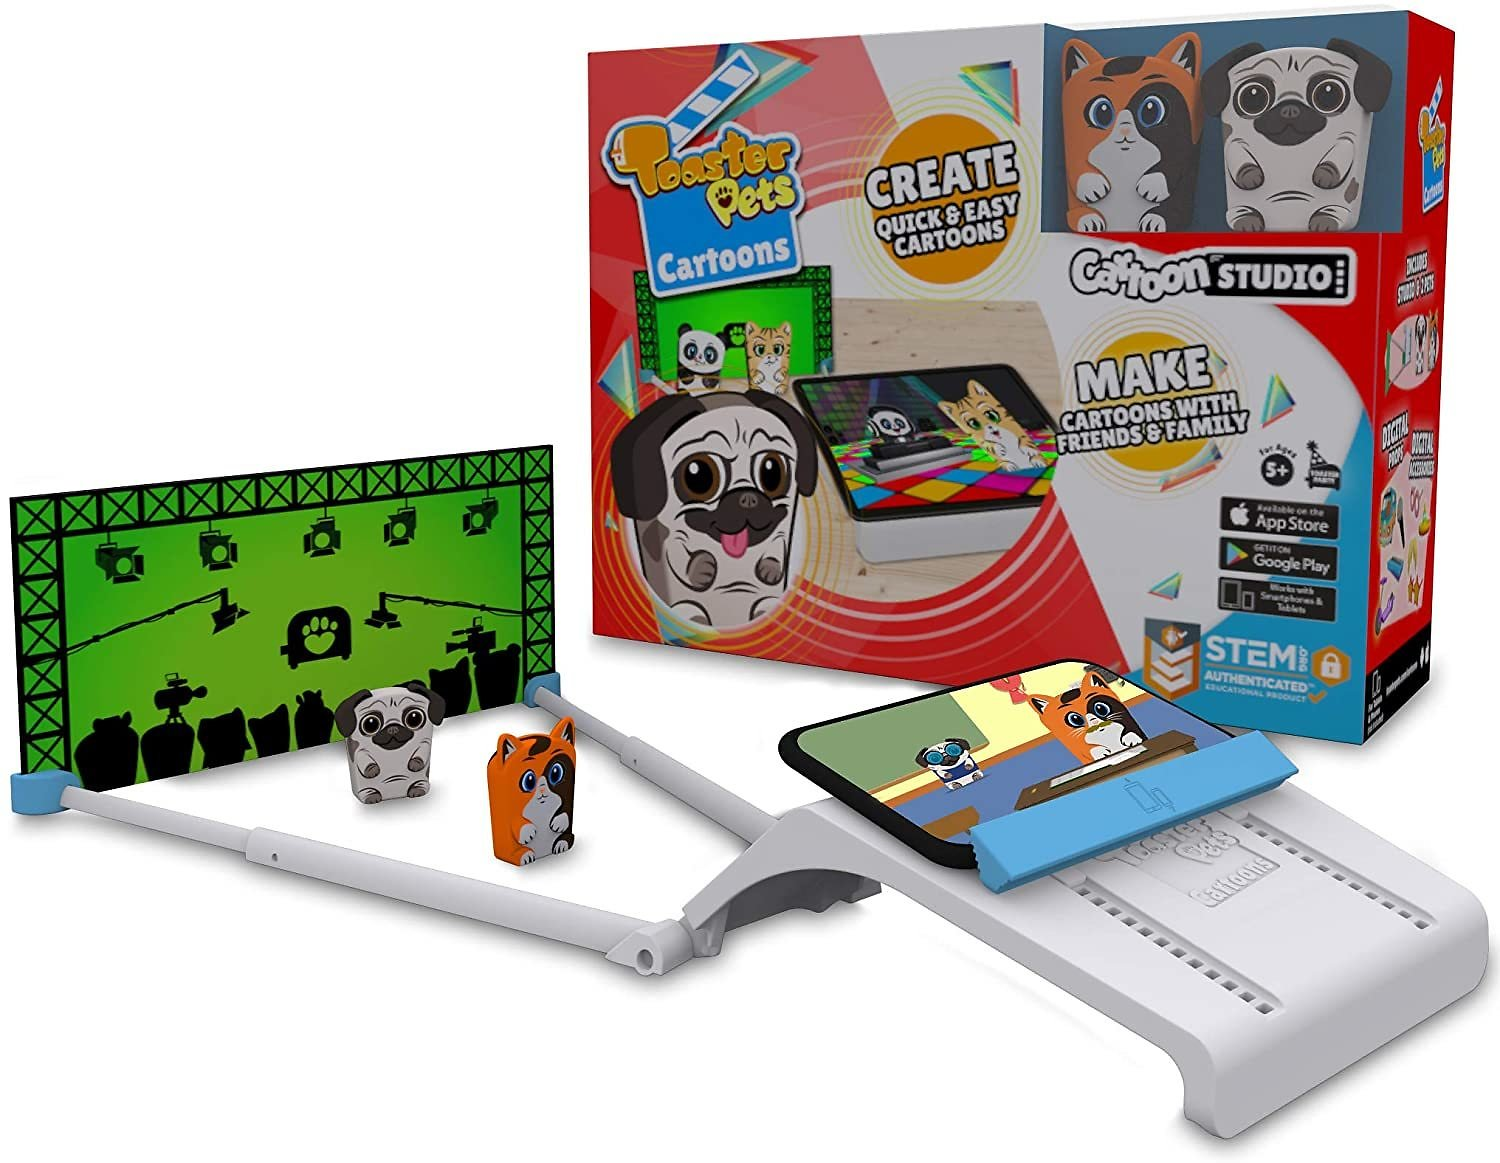 65% Off Toaster Pets Cartoons Studio Kit Quick, Easy and Collaborative Movie Maker Set for Kids